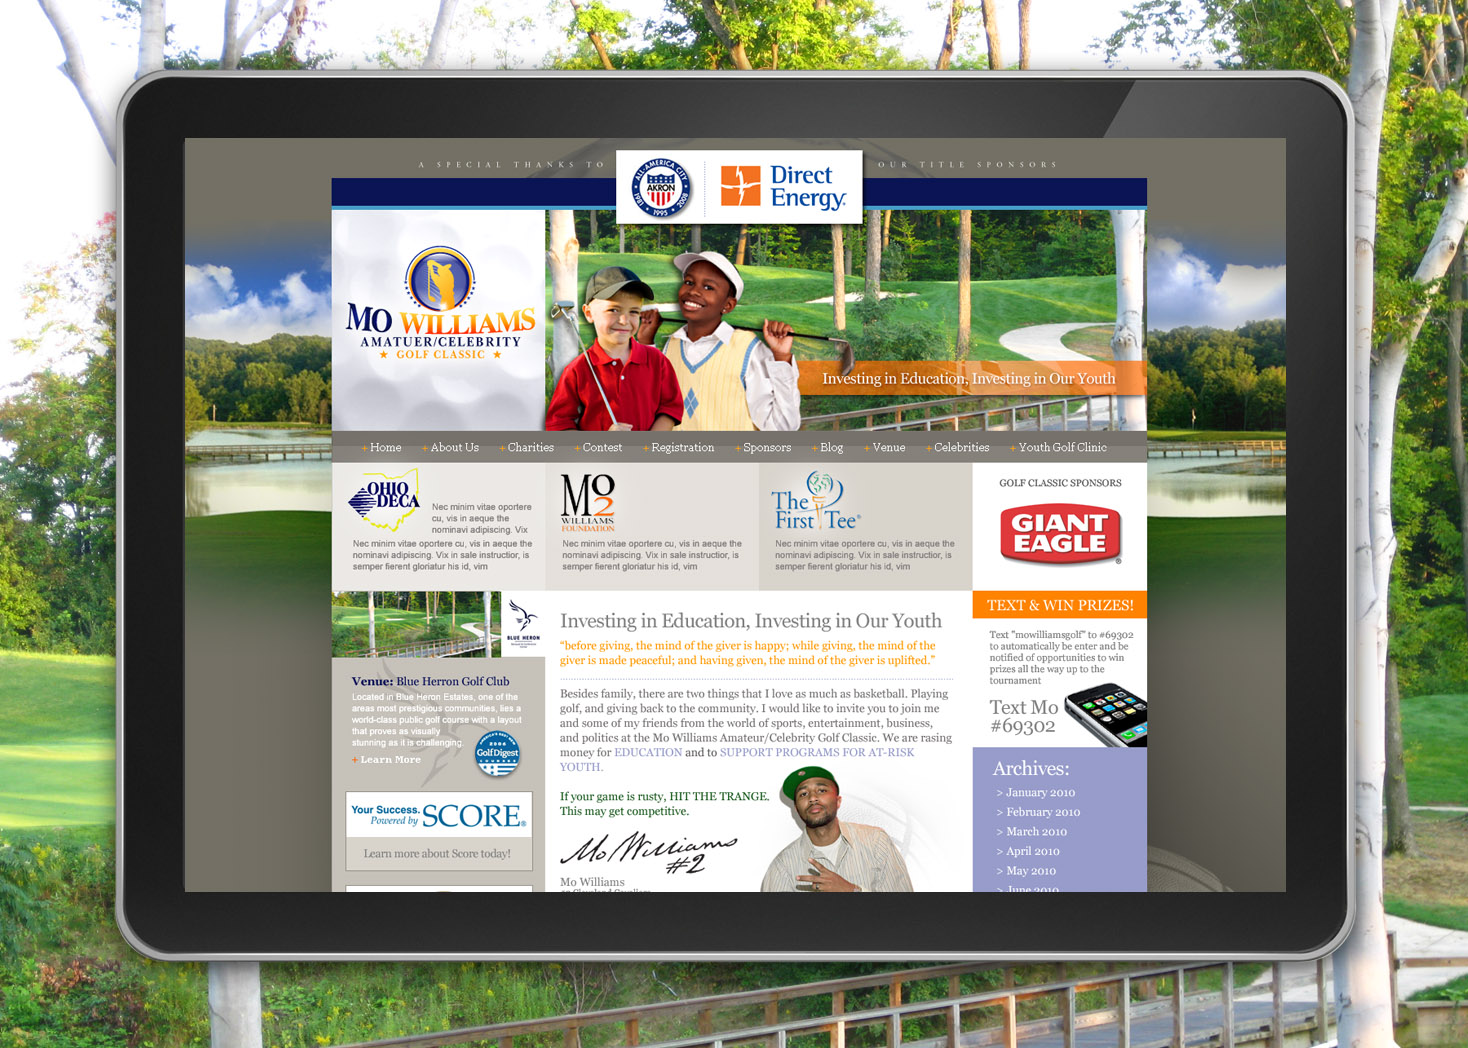 Mo Williams Celebrity / Amateur Golf Classic - Website Design - Les Lehman Design